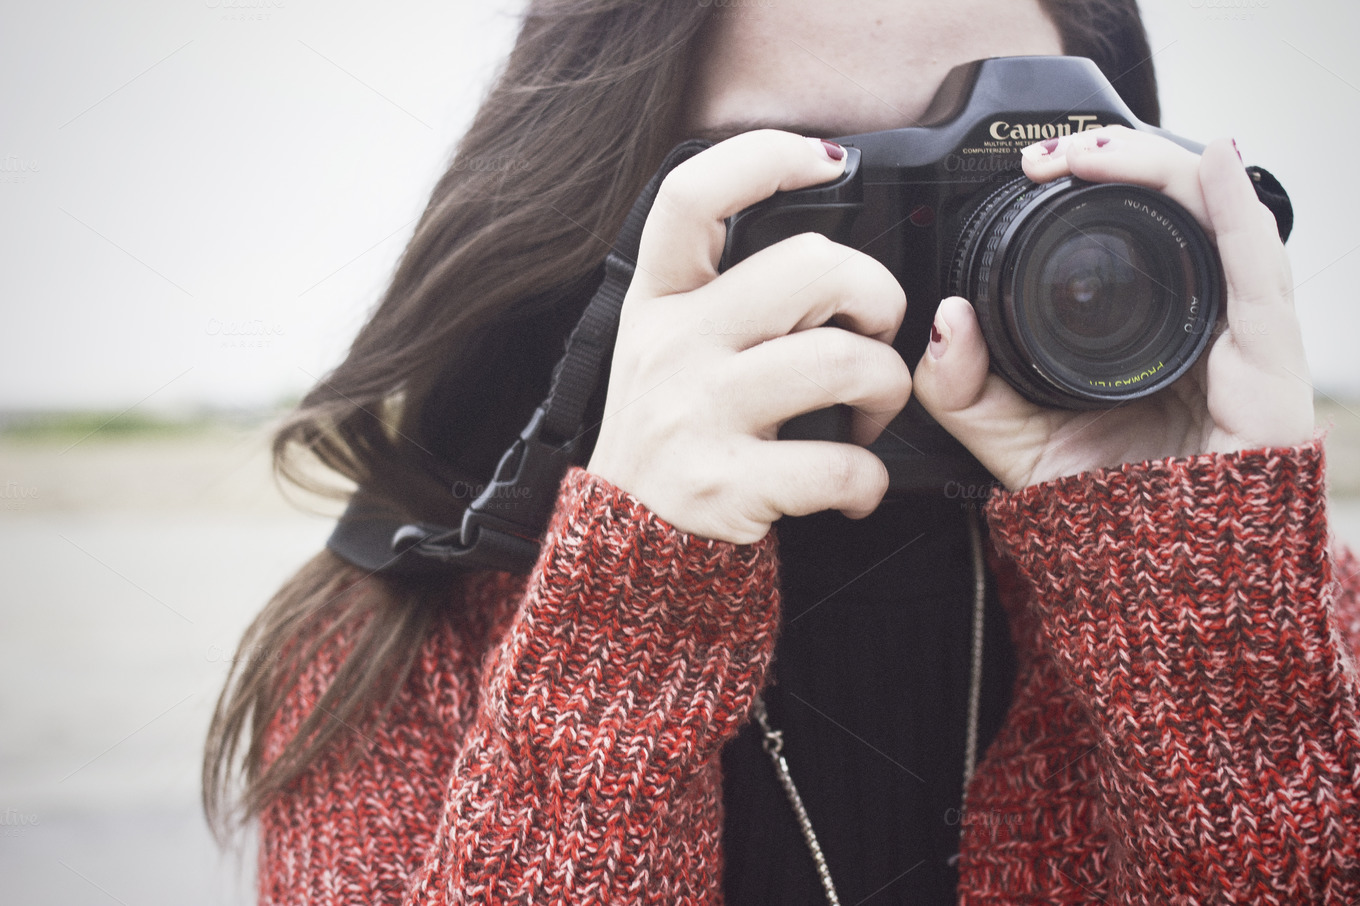 Girl Taking Photo With Film Camera People Photos On